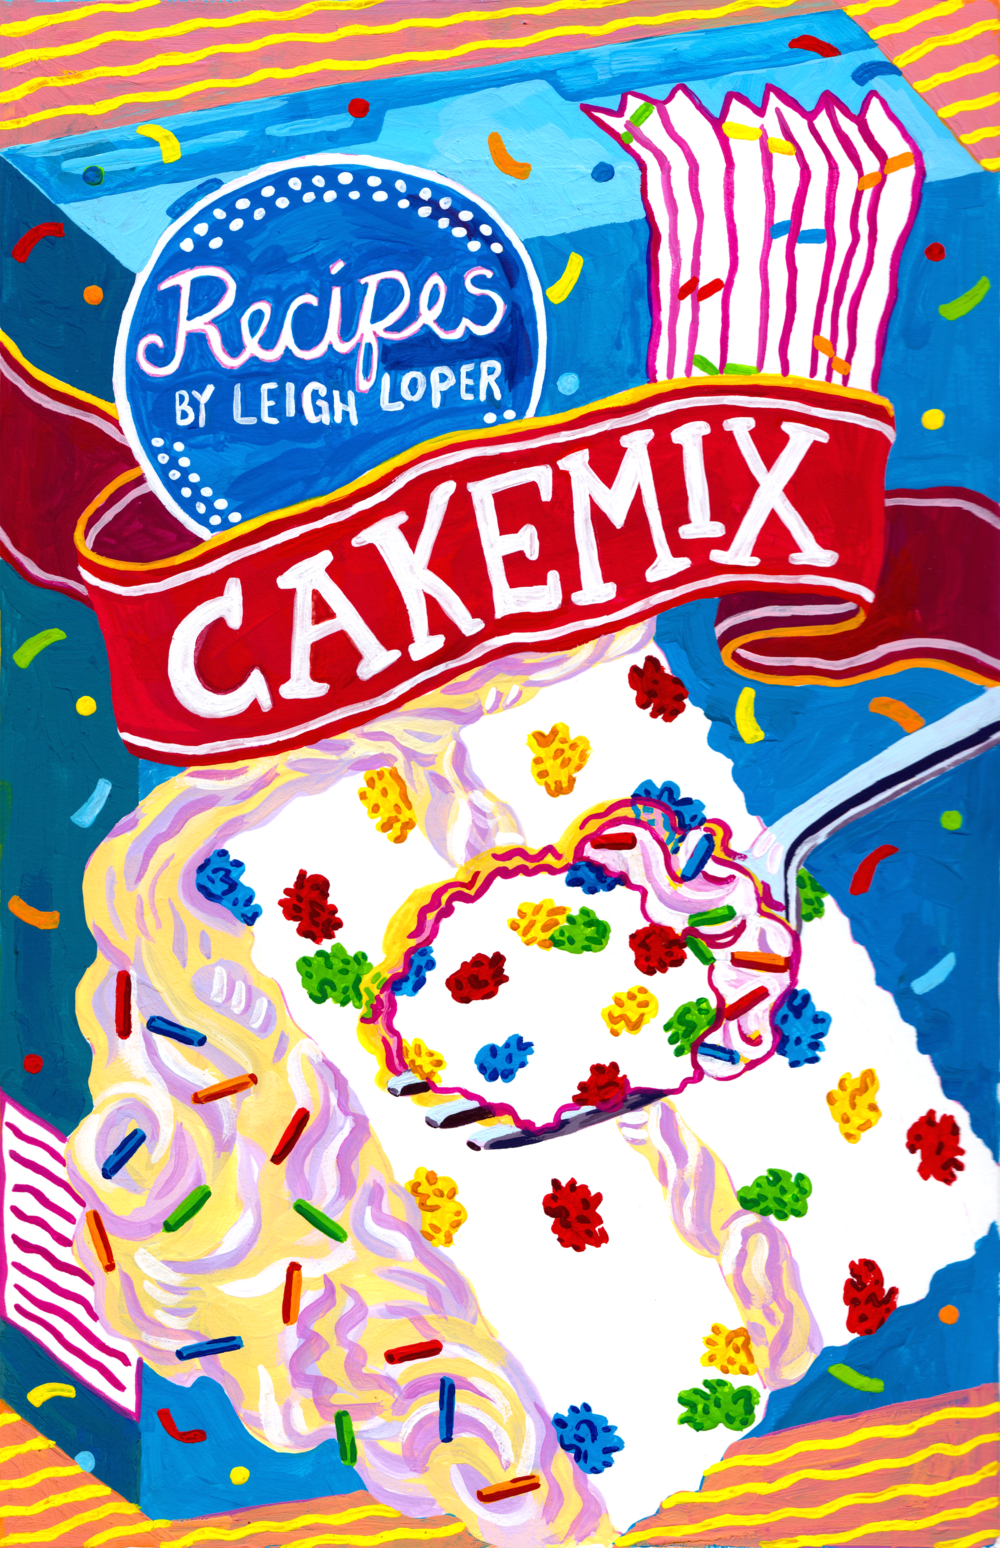 Cakemix recipe book